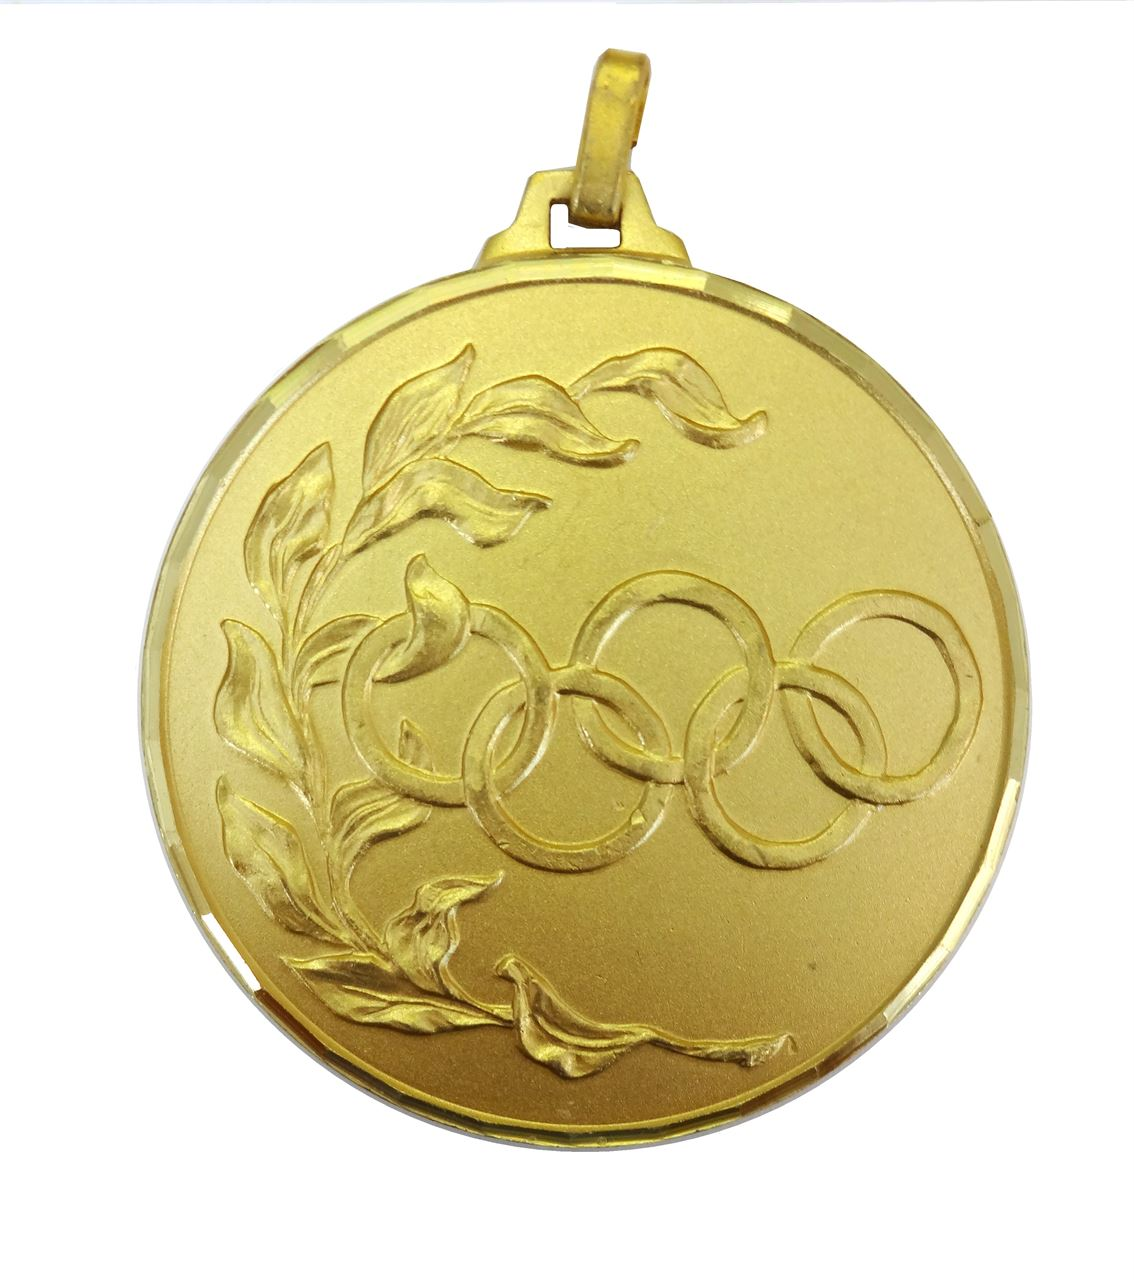 gold medal squared - HD1134×1280